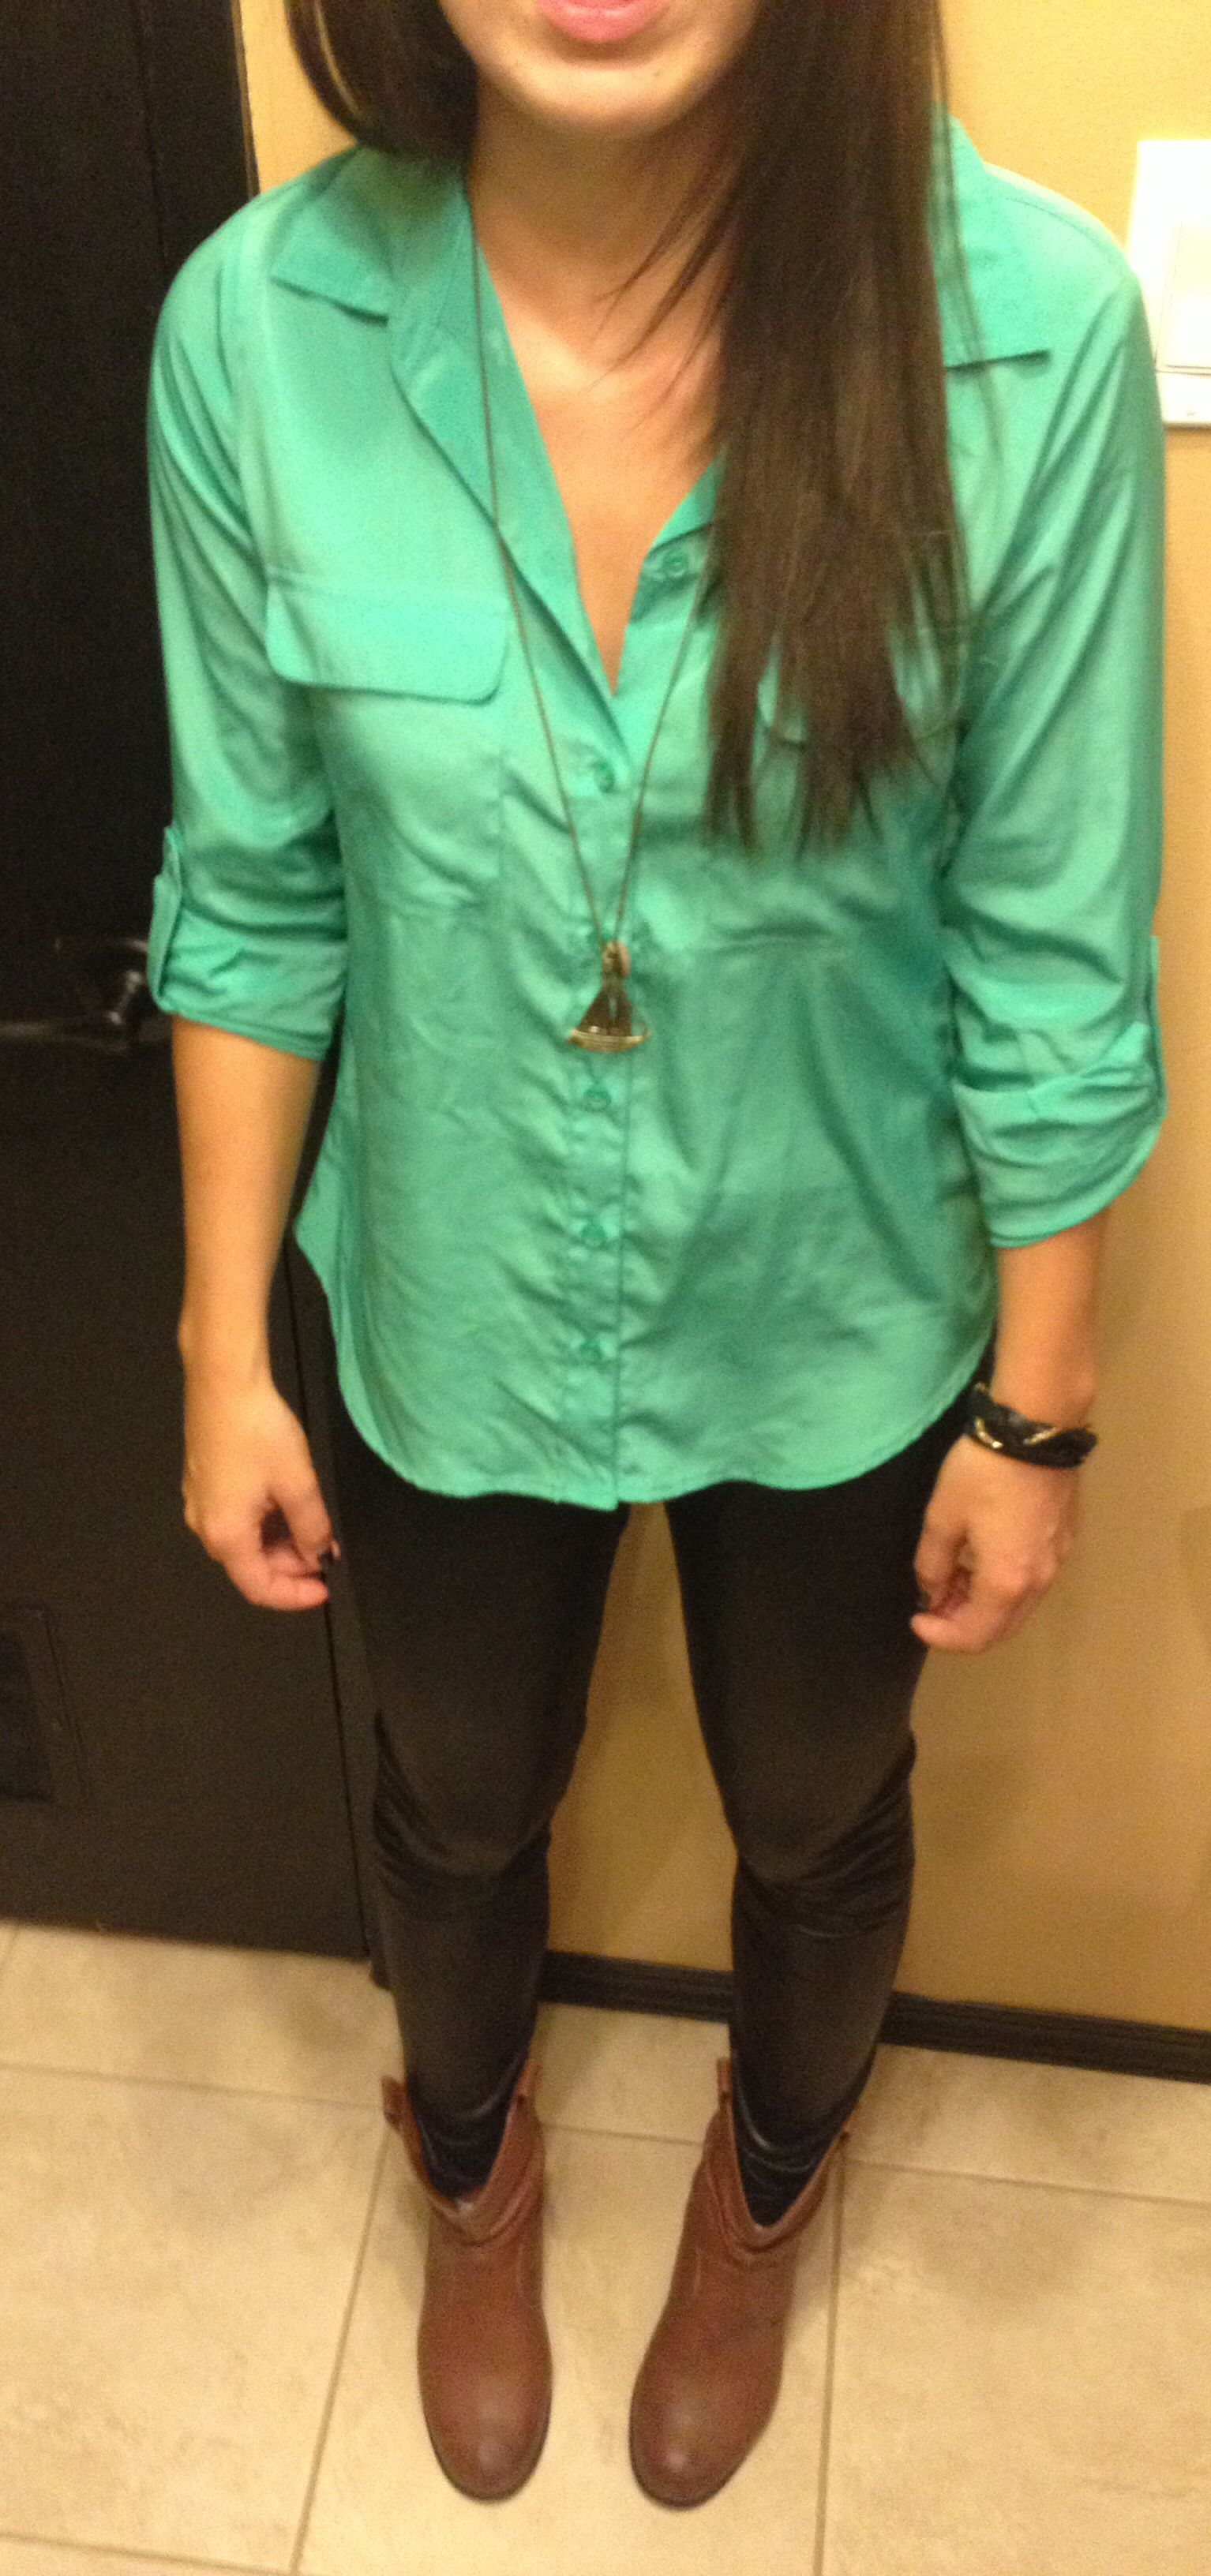 Mint Green Dress Shirt Leather Leggings And Brown Boots Topped Off With Gold Black Accessories Mint Green Dress Shirt Leather Leggings Black Accessories